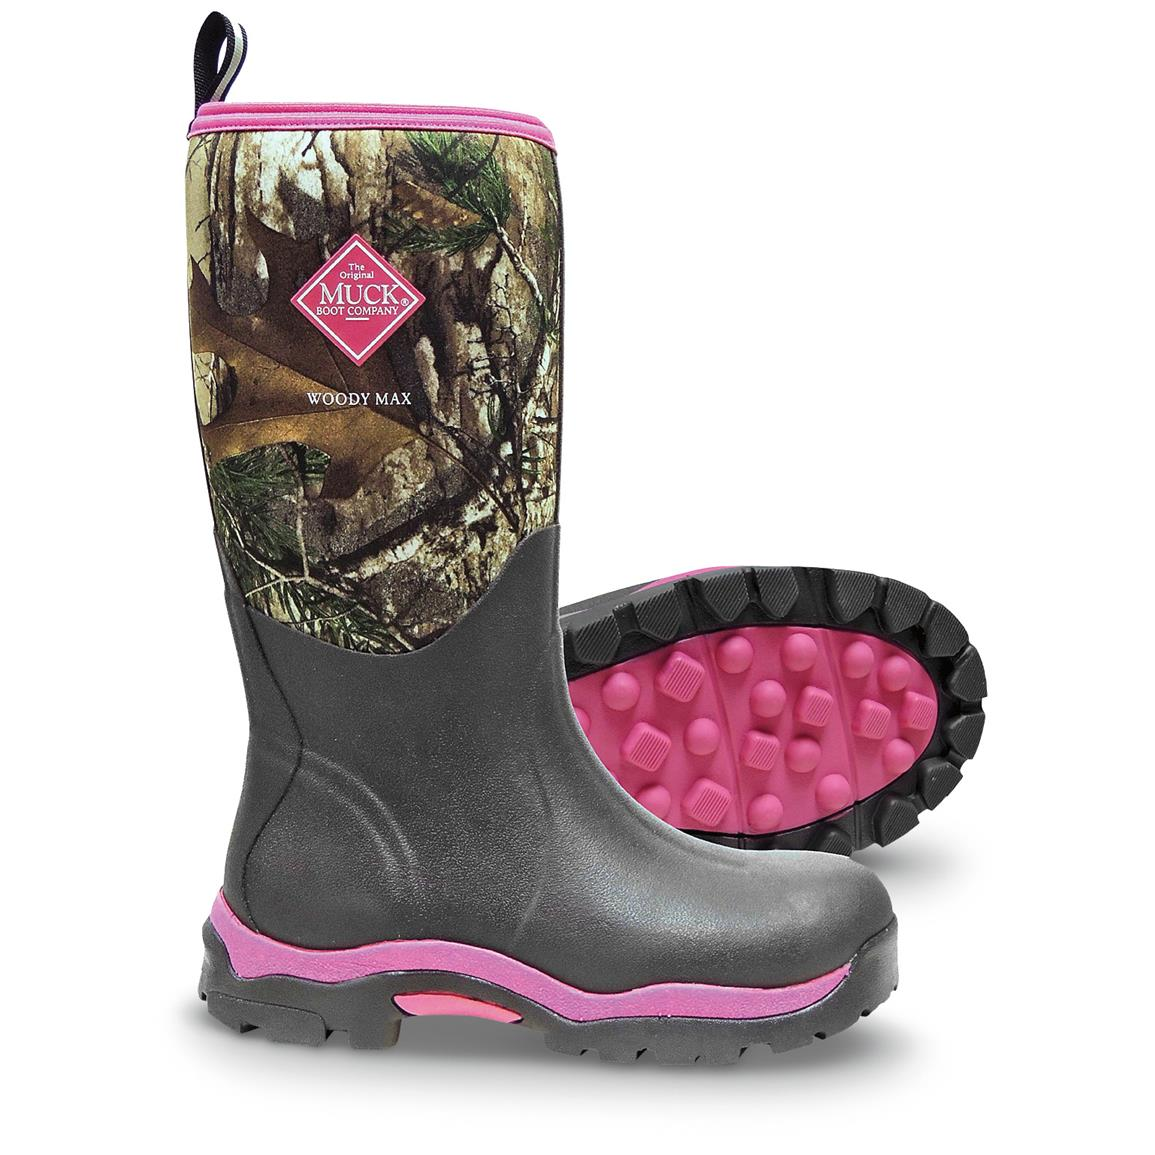 Muck Boots Woody Max Women's Hunting Boots - 633681, Rubber & Rain ...